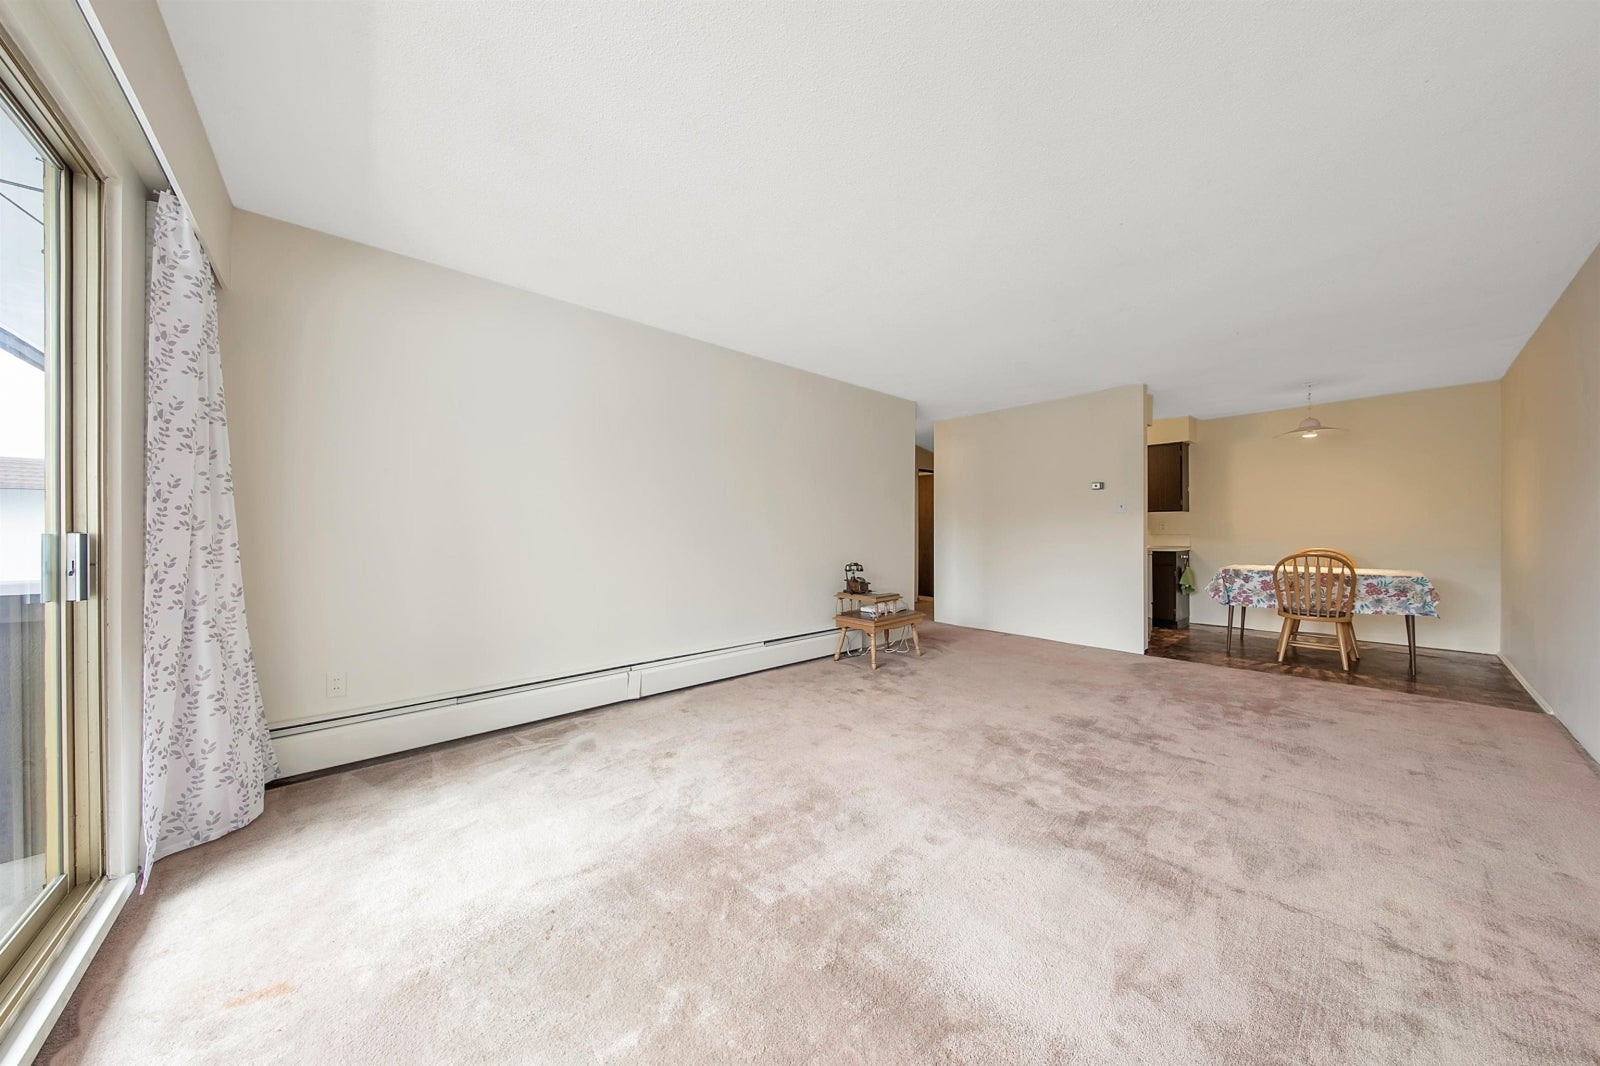 306 1345 CHESTERFIELD AVENUE - Central Lonsdale Apartment/Condo for sale, 1 Bedroom (R2622121) #12